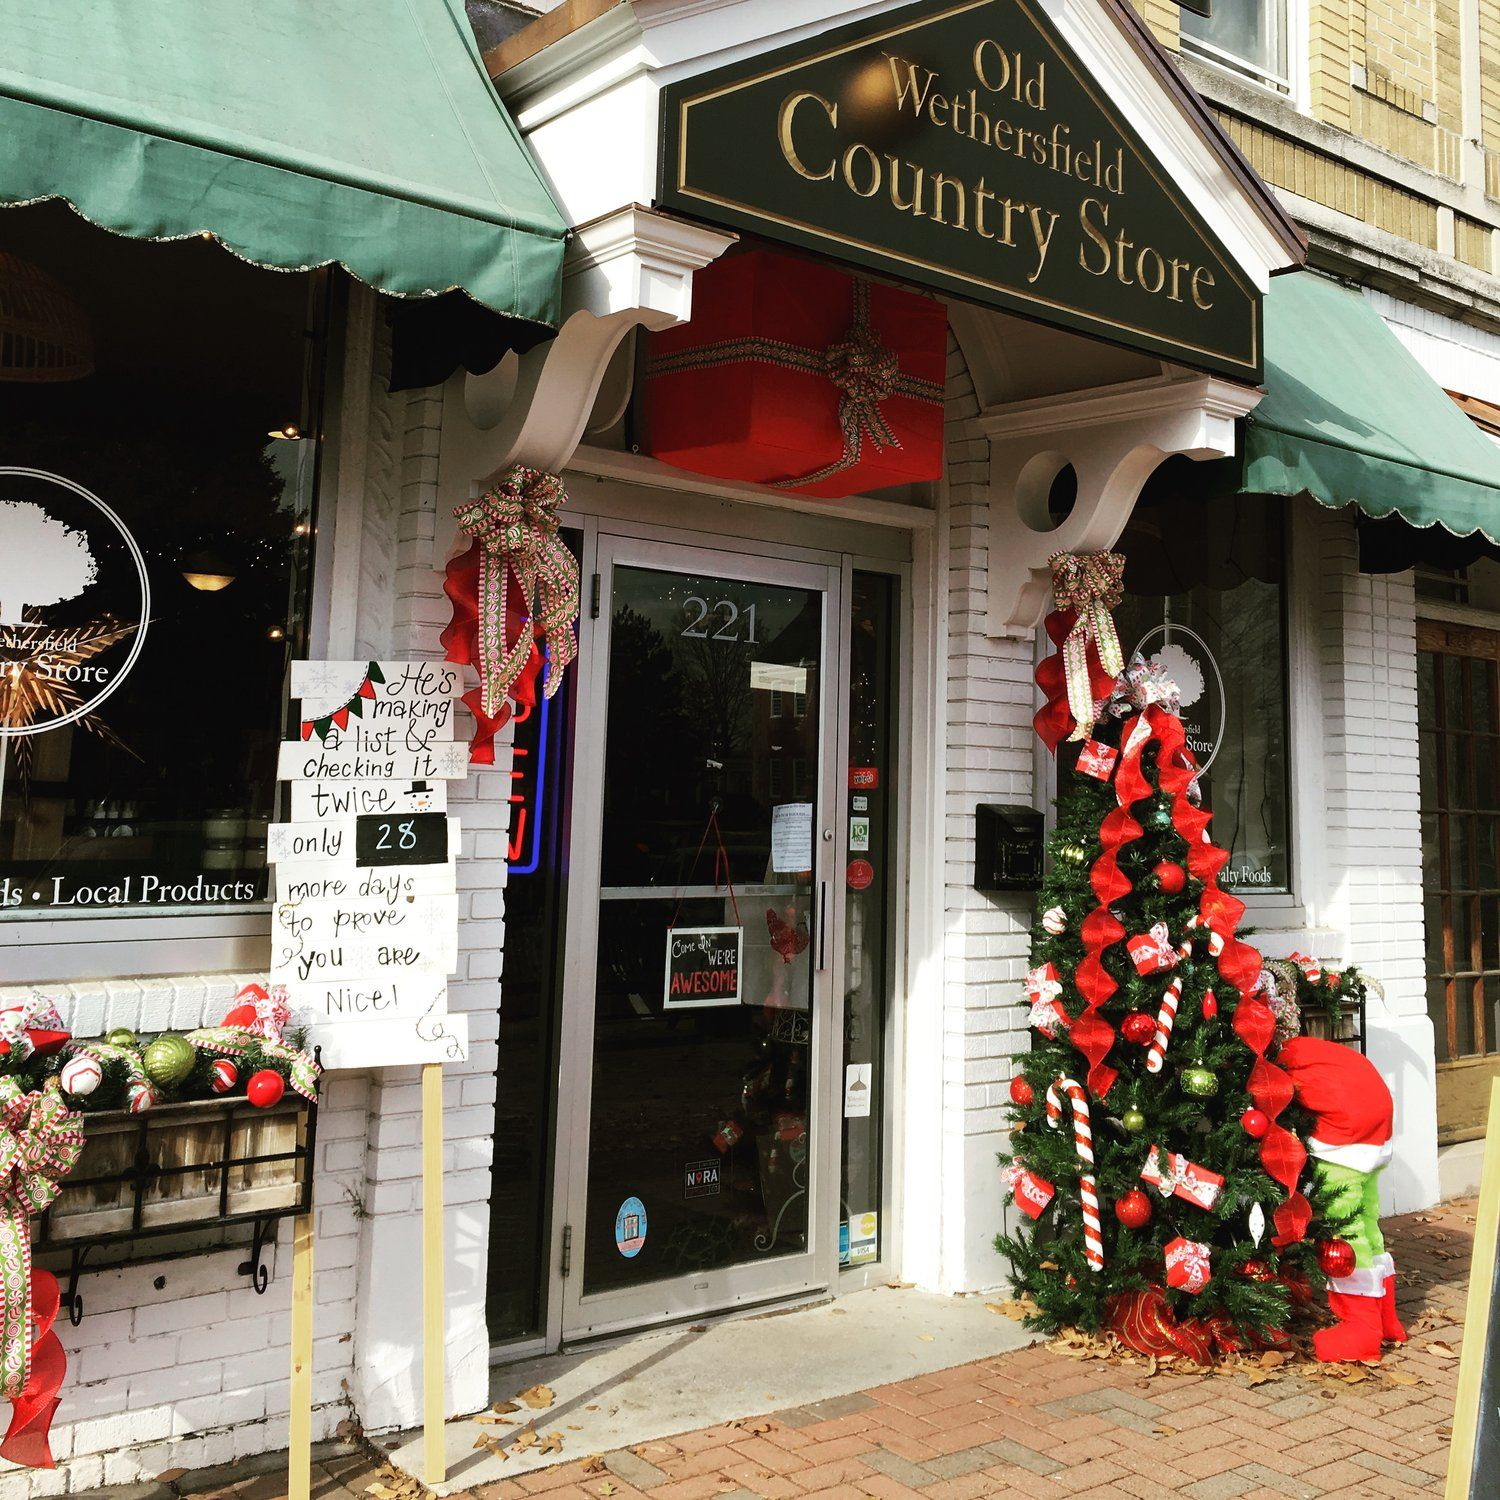 Old Wethersfield Country Store 221 Main Street 2016 Ct Now Best Of Hartford Winner For Best Cheese Shop Country Store Wethersfield Country